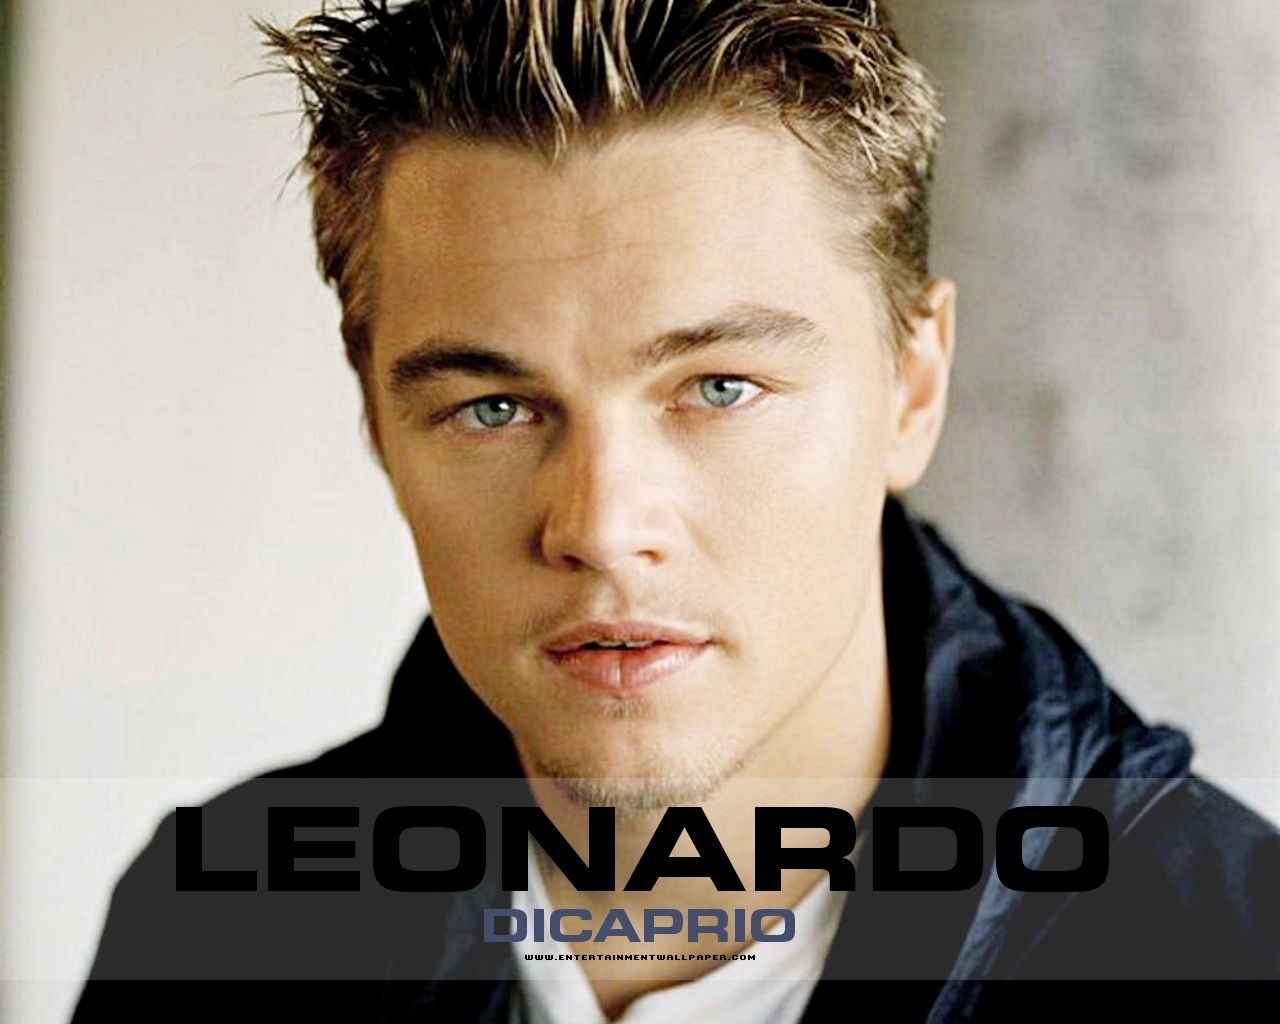 free wallpapers: leonardo dicaprio latest hd wallpapers